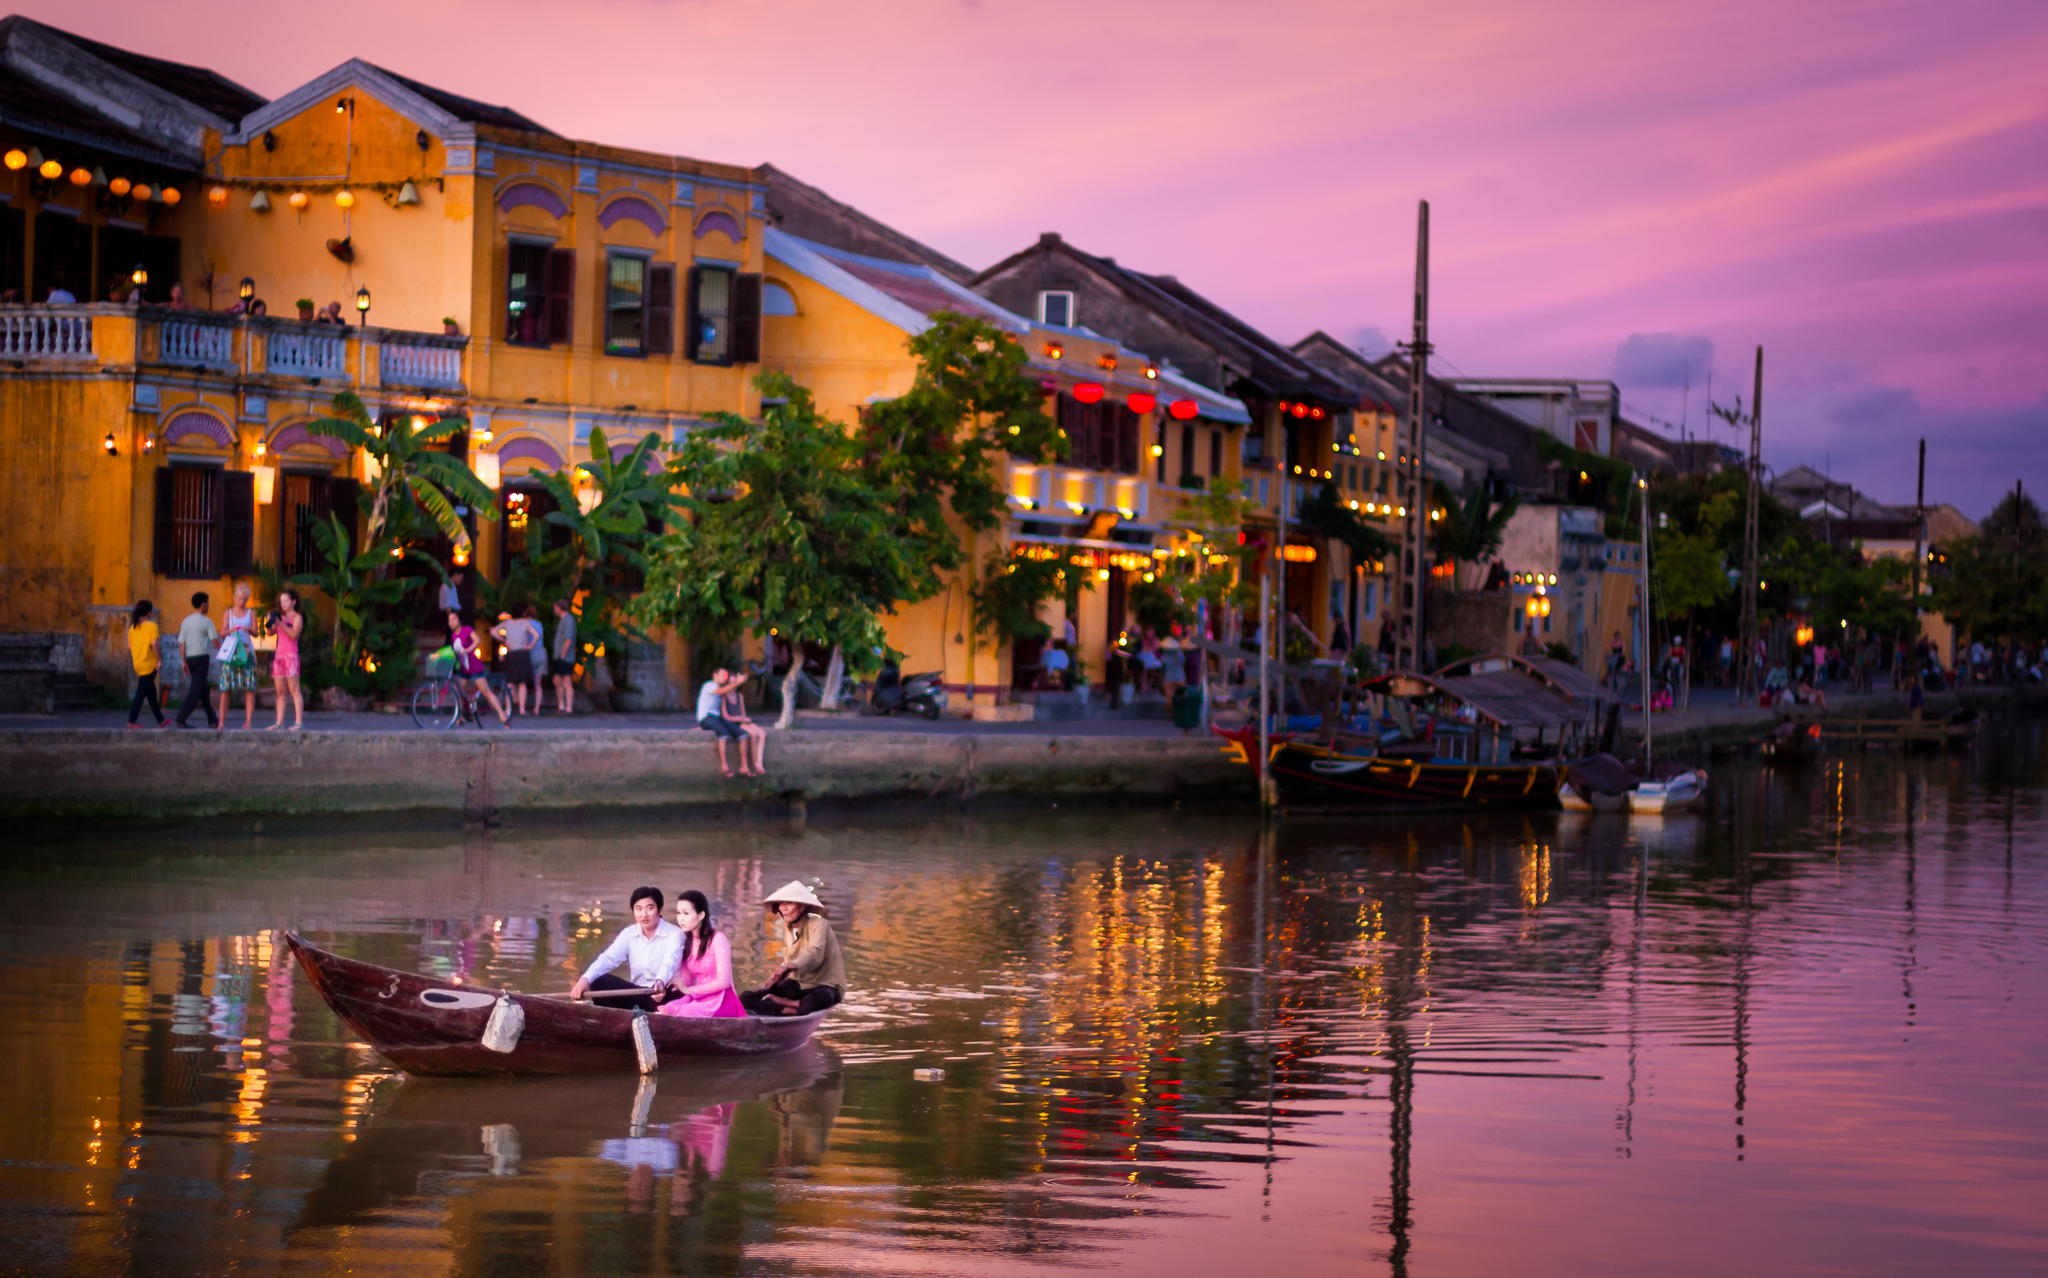 Ho Chi Minh City - Cu Chi - Da Nang - Hoi An - Hue - Ha Long (10 Days)